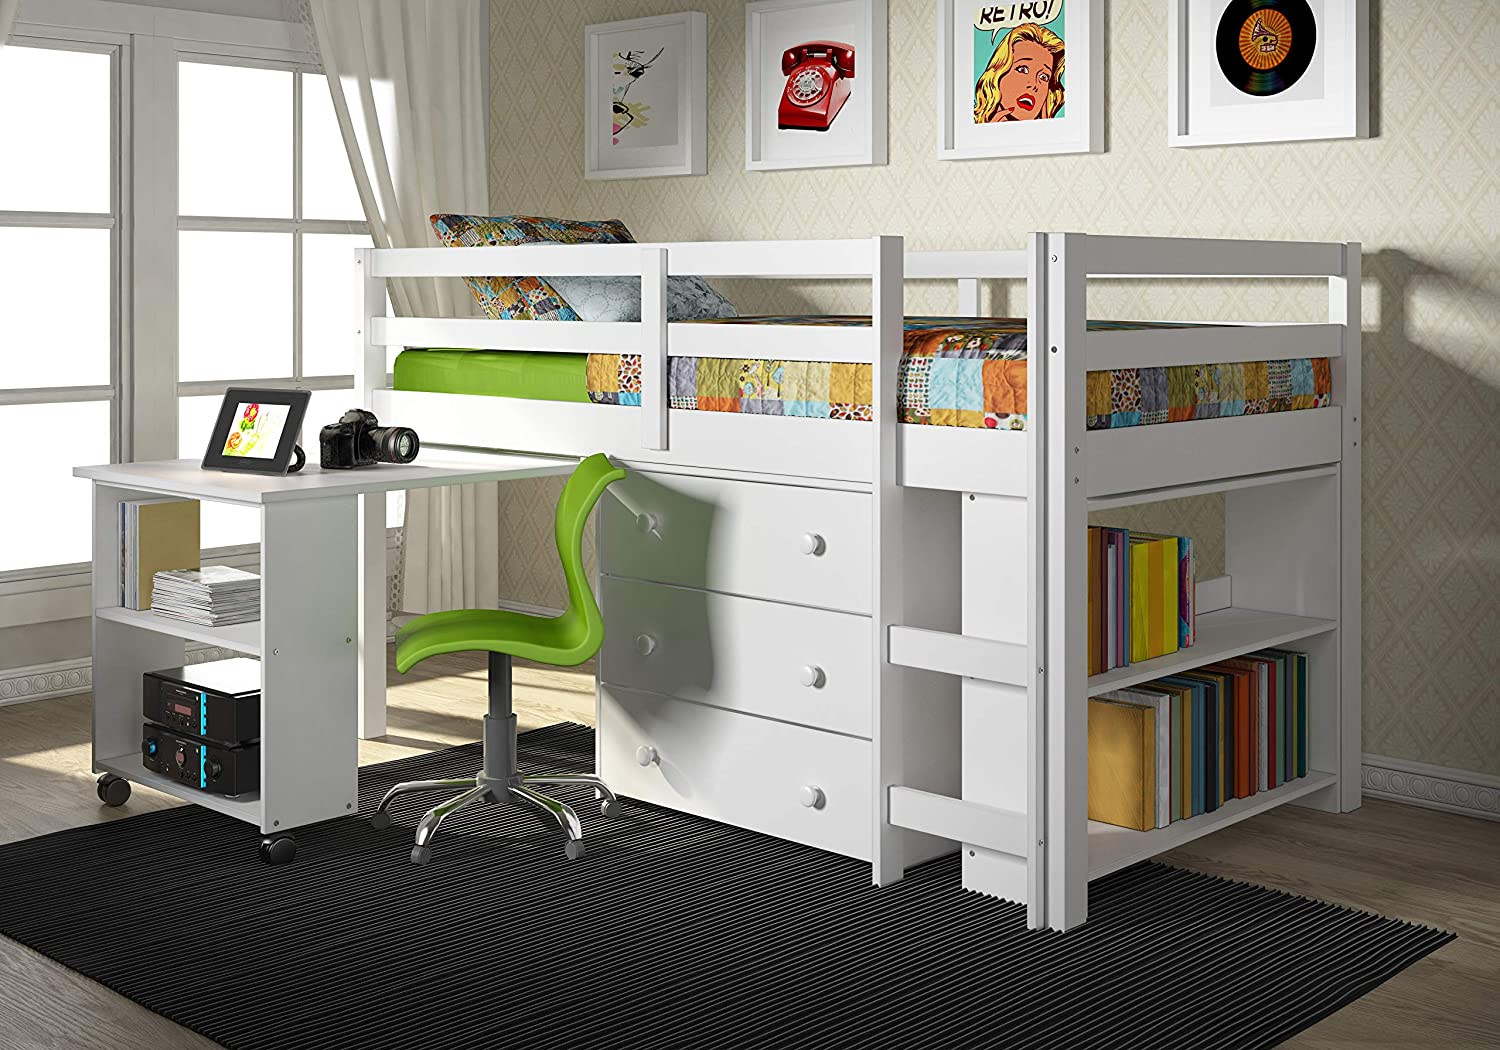 The Best Kids Bed With Desk Options for Saving Space - Bob Vila